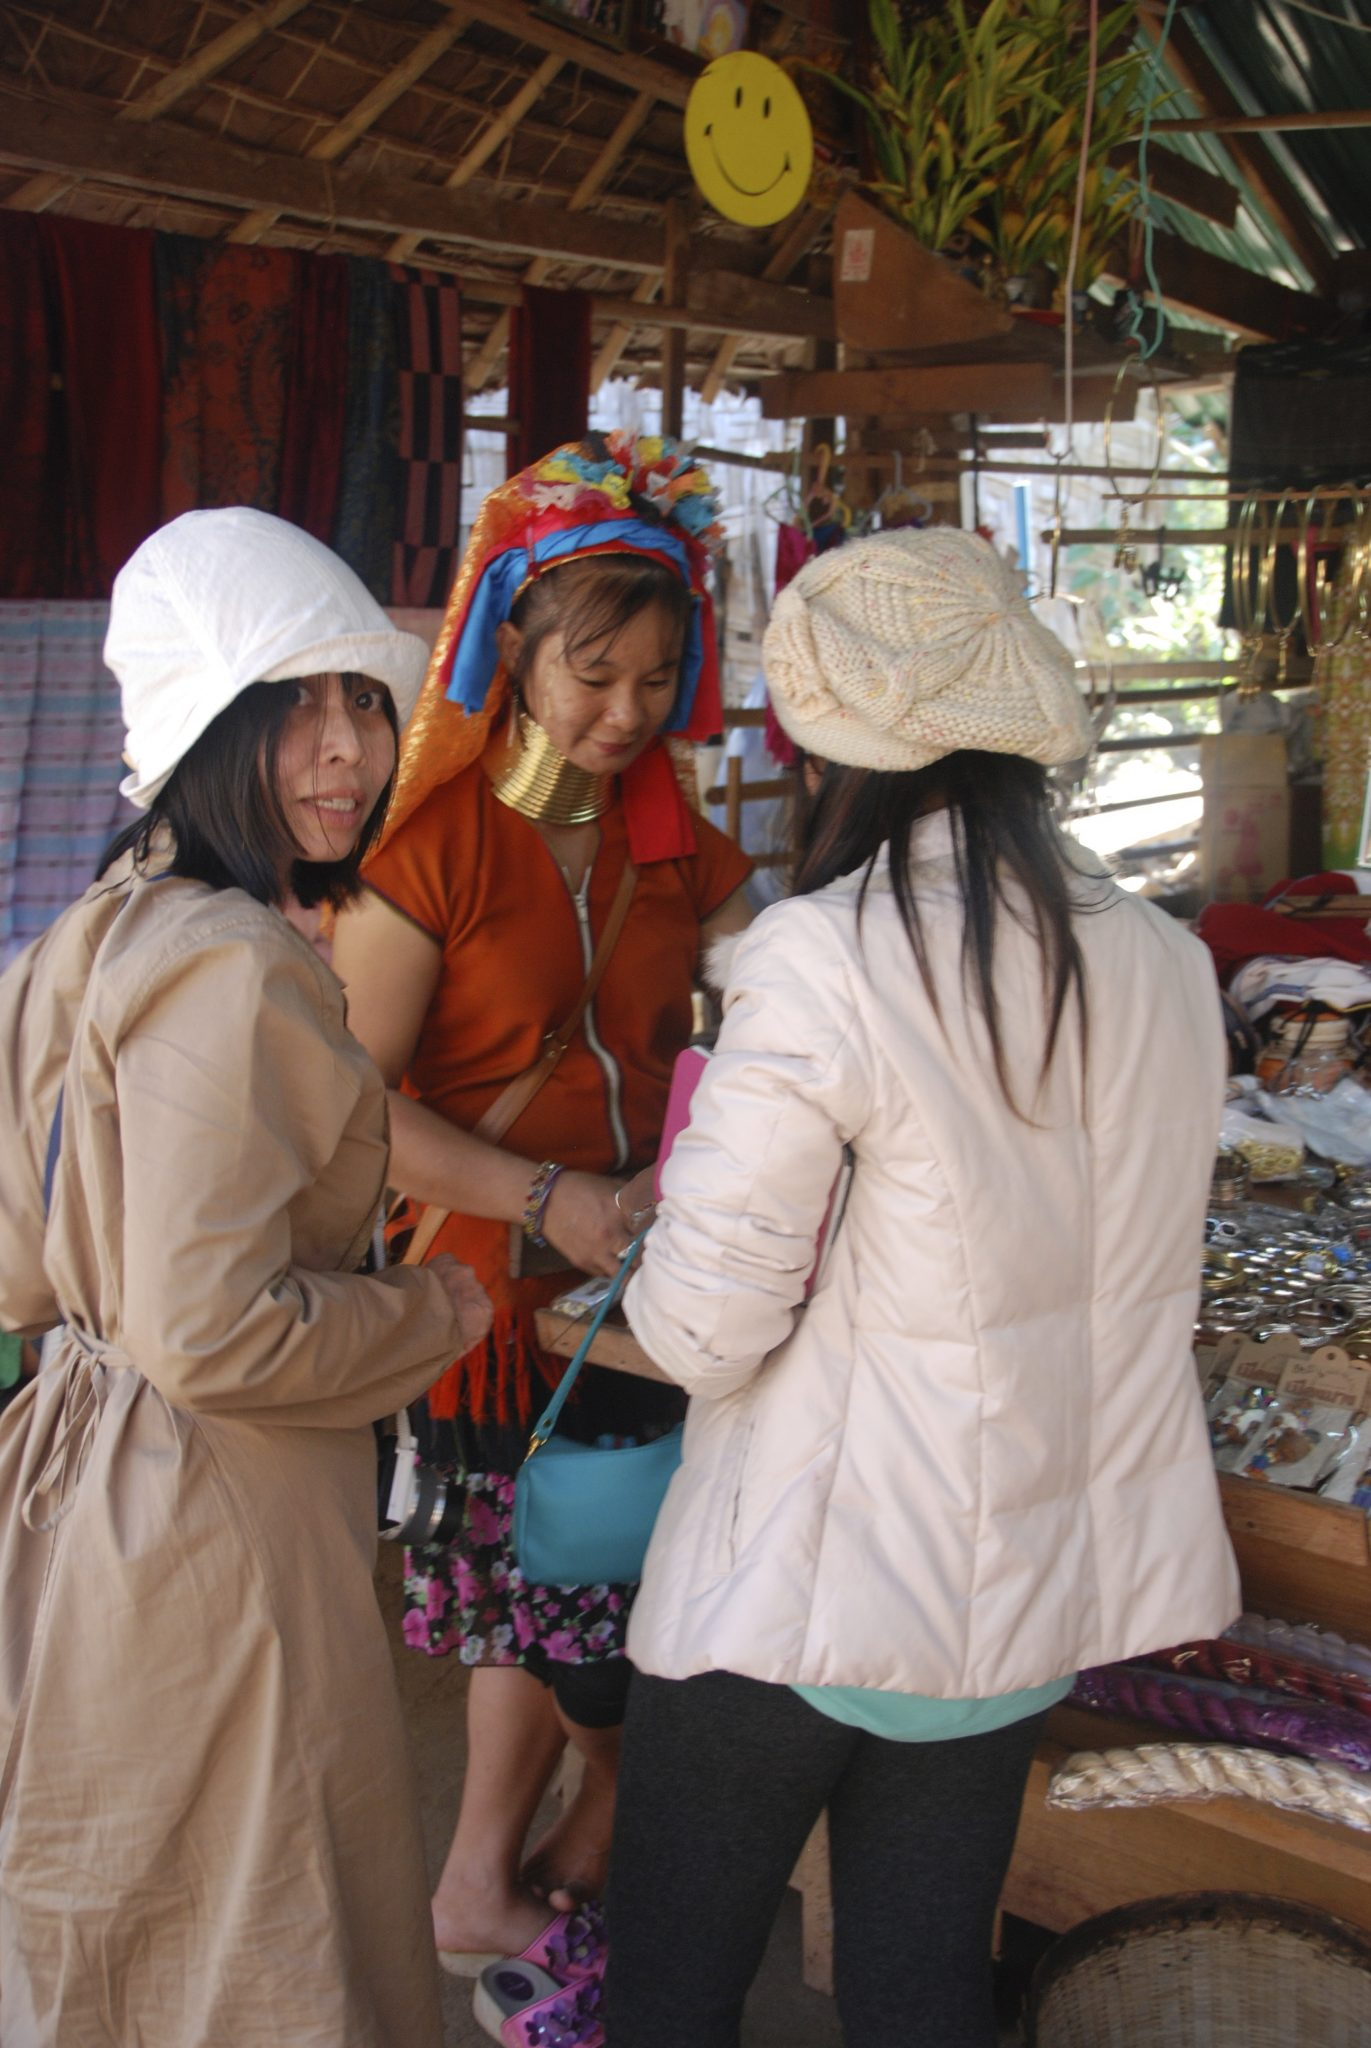 The majority of the tourists that visit Huay Sua Thao, is from Thai origin. Furthermore, the domestic market is the biggest market for community-based tourism in Thailand. That is favorable if community-based tourism is indeed developed in the Kayan villages. Photo by: Charlotte Louwman-Vogels